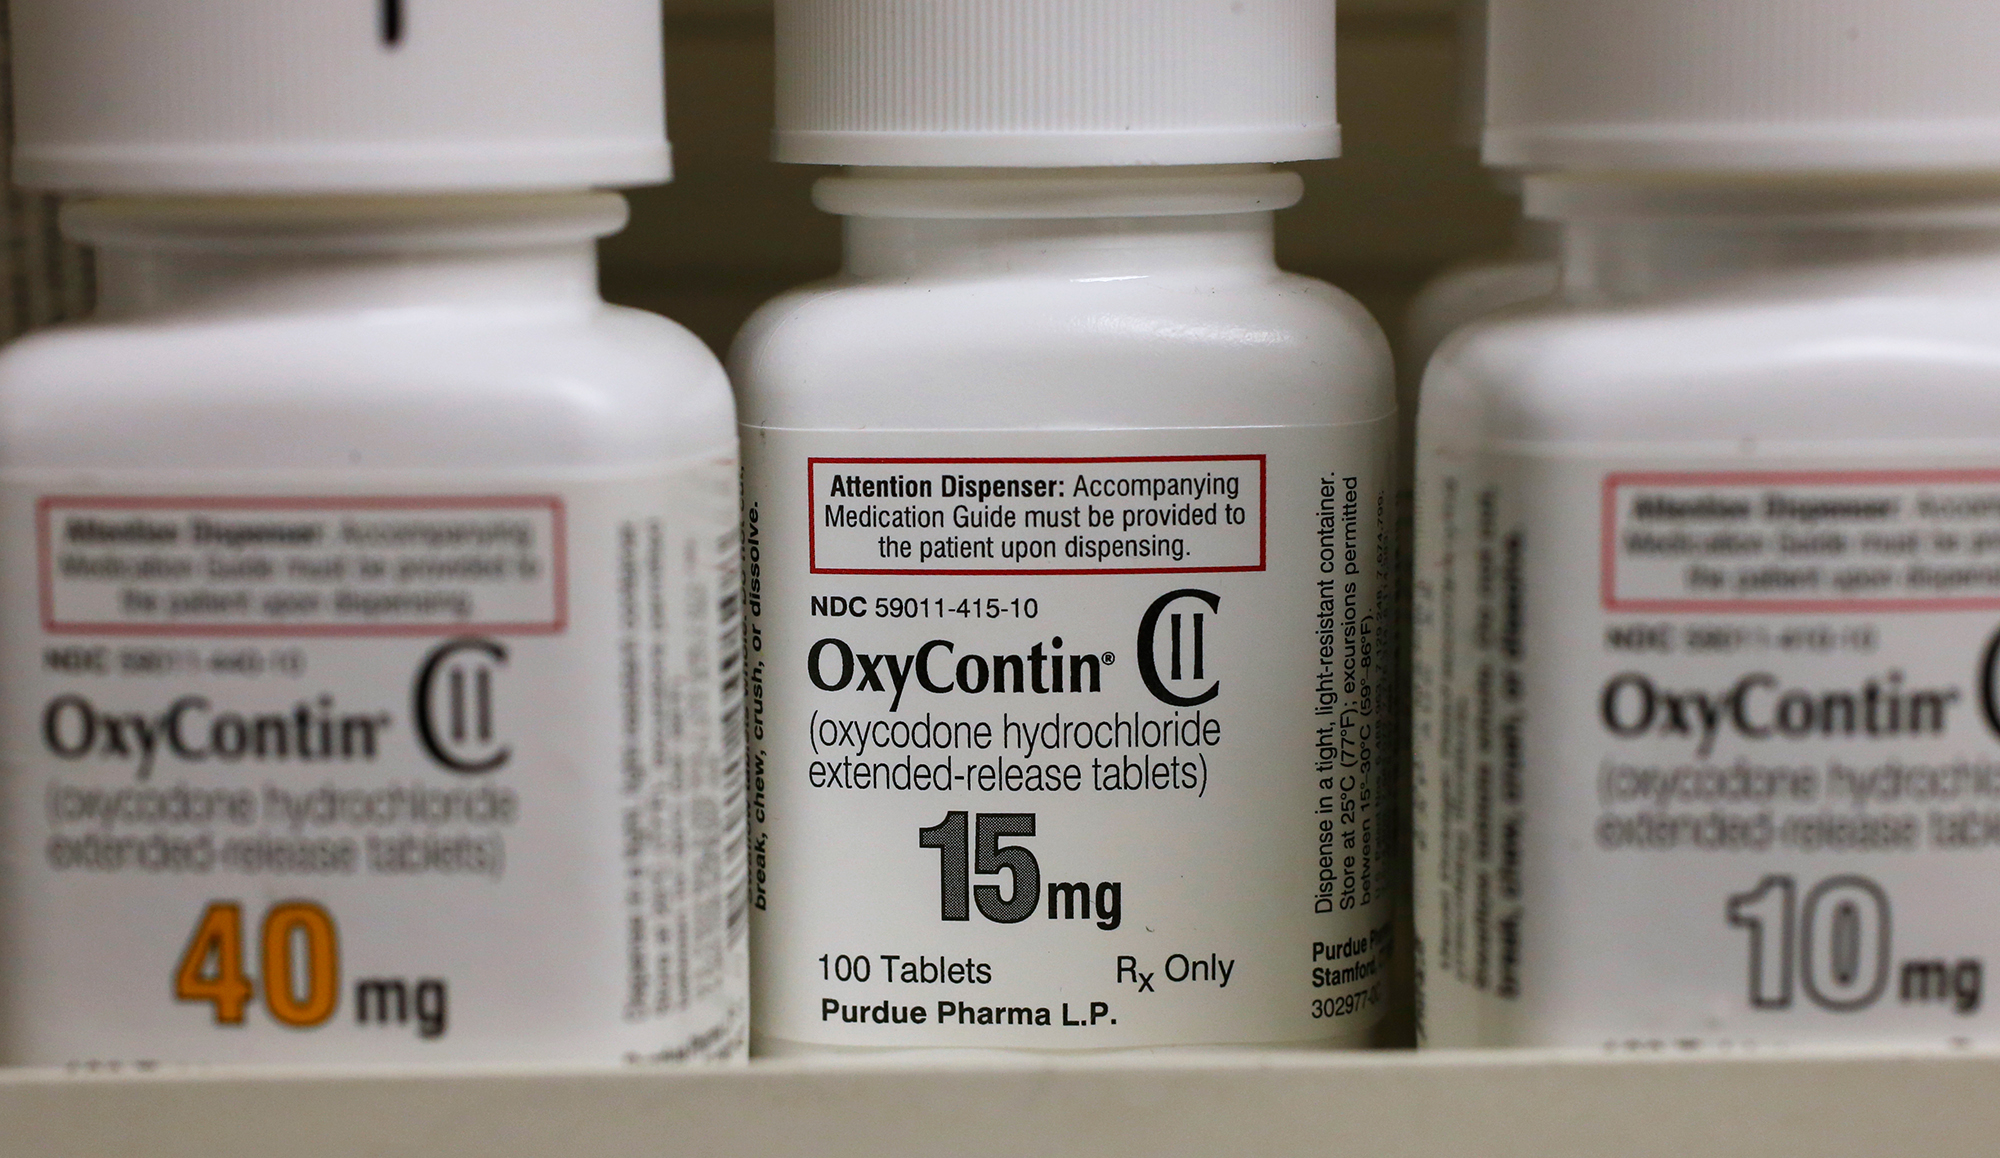 Purdue Pharma to plead guilty to federal criminal charges related to opioid crisis